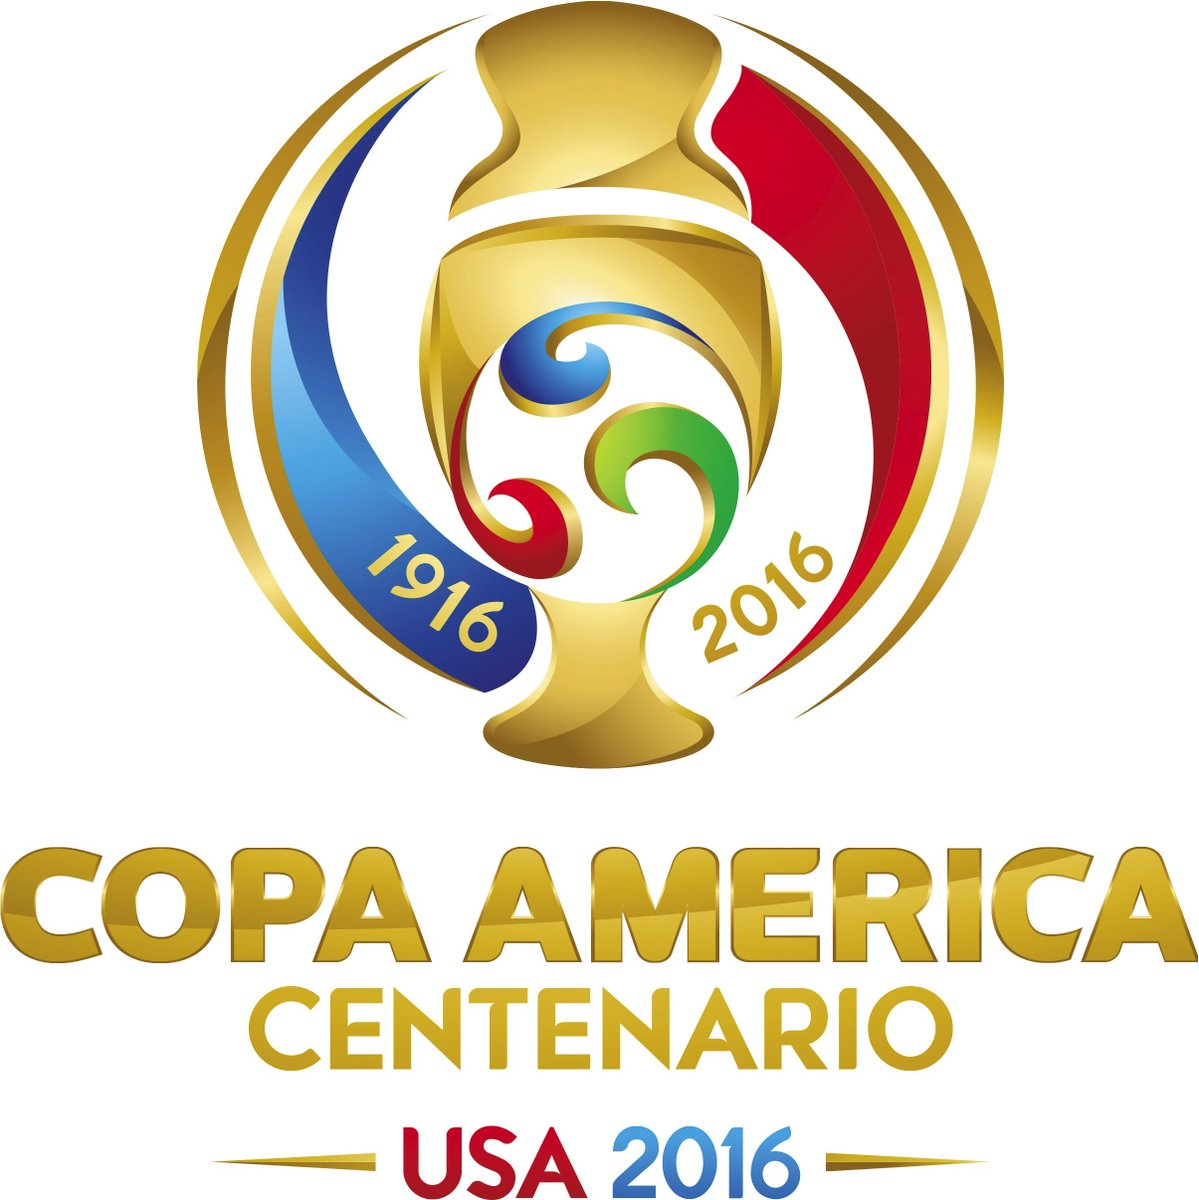 SBS secures exclusive FTA for Copa America Centenario #Messi #Suarez #Neymar https://t.co/afO55gvjb4 @TheWorldGame